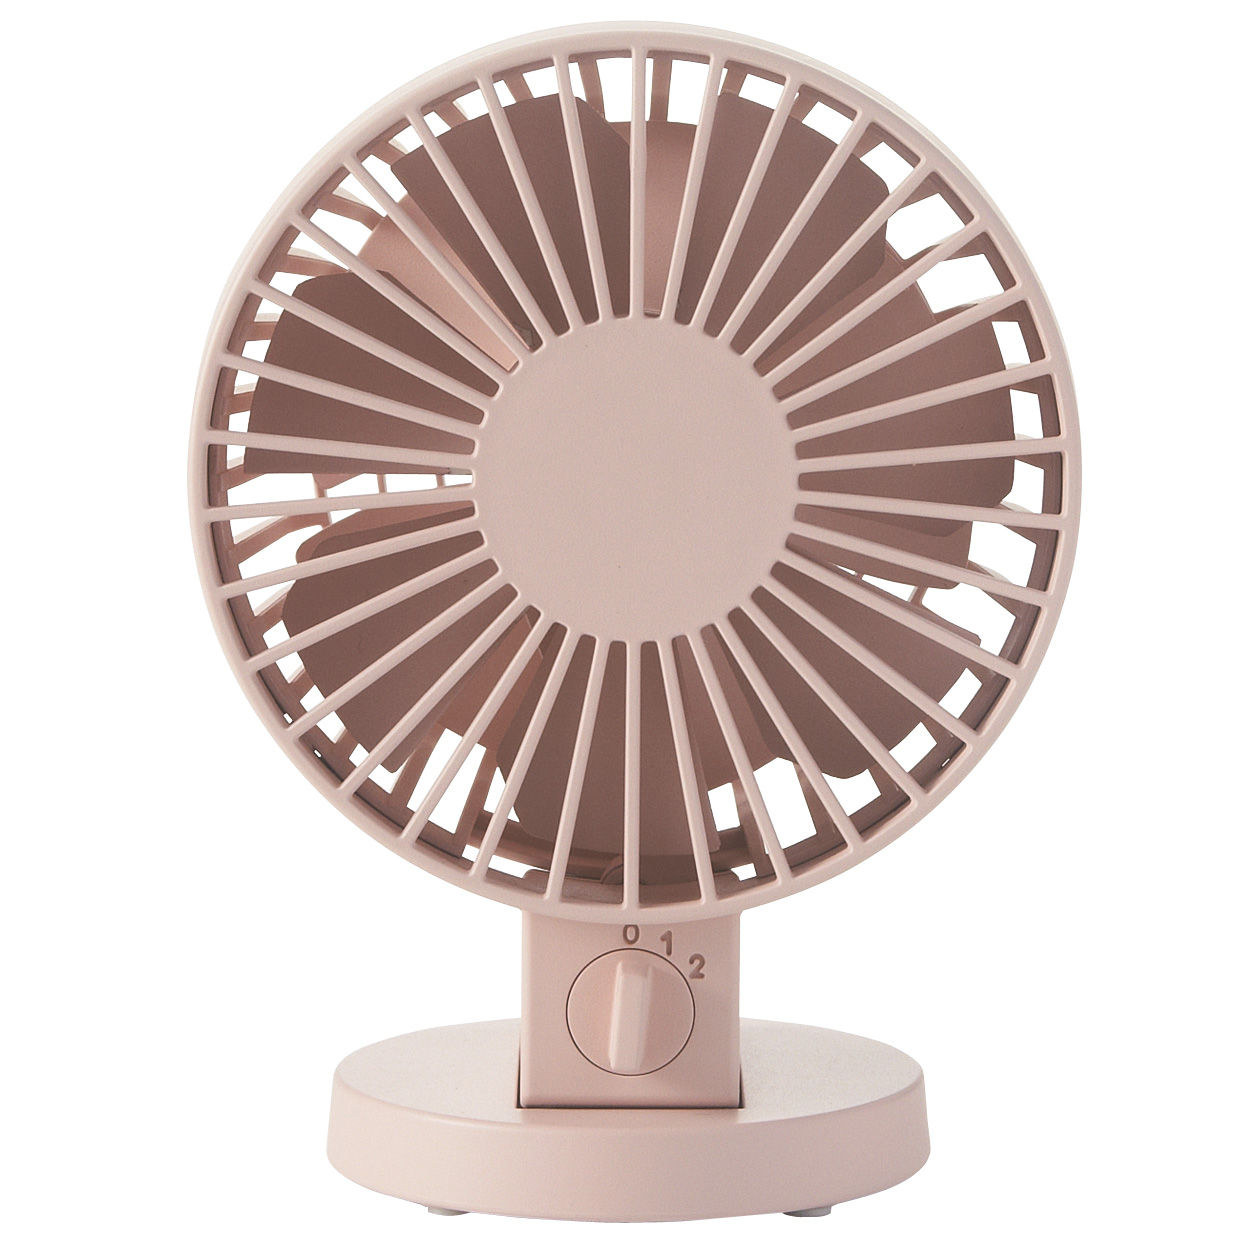 Usb Desk Fan Low Noise Pink